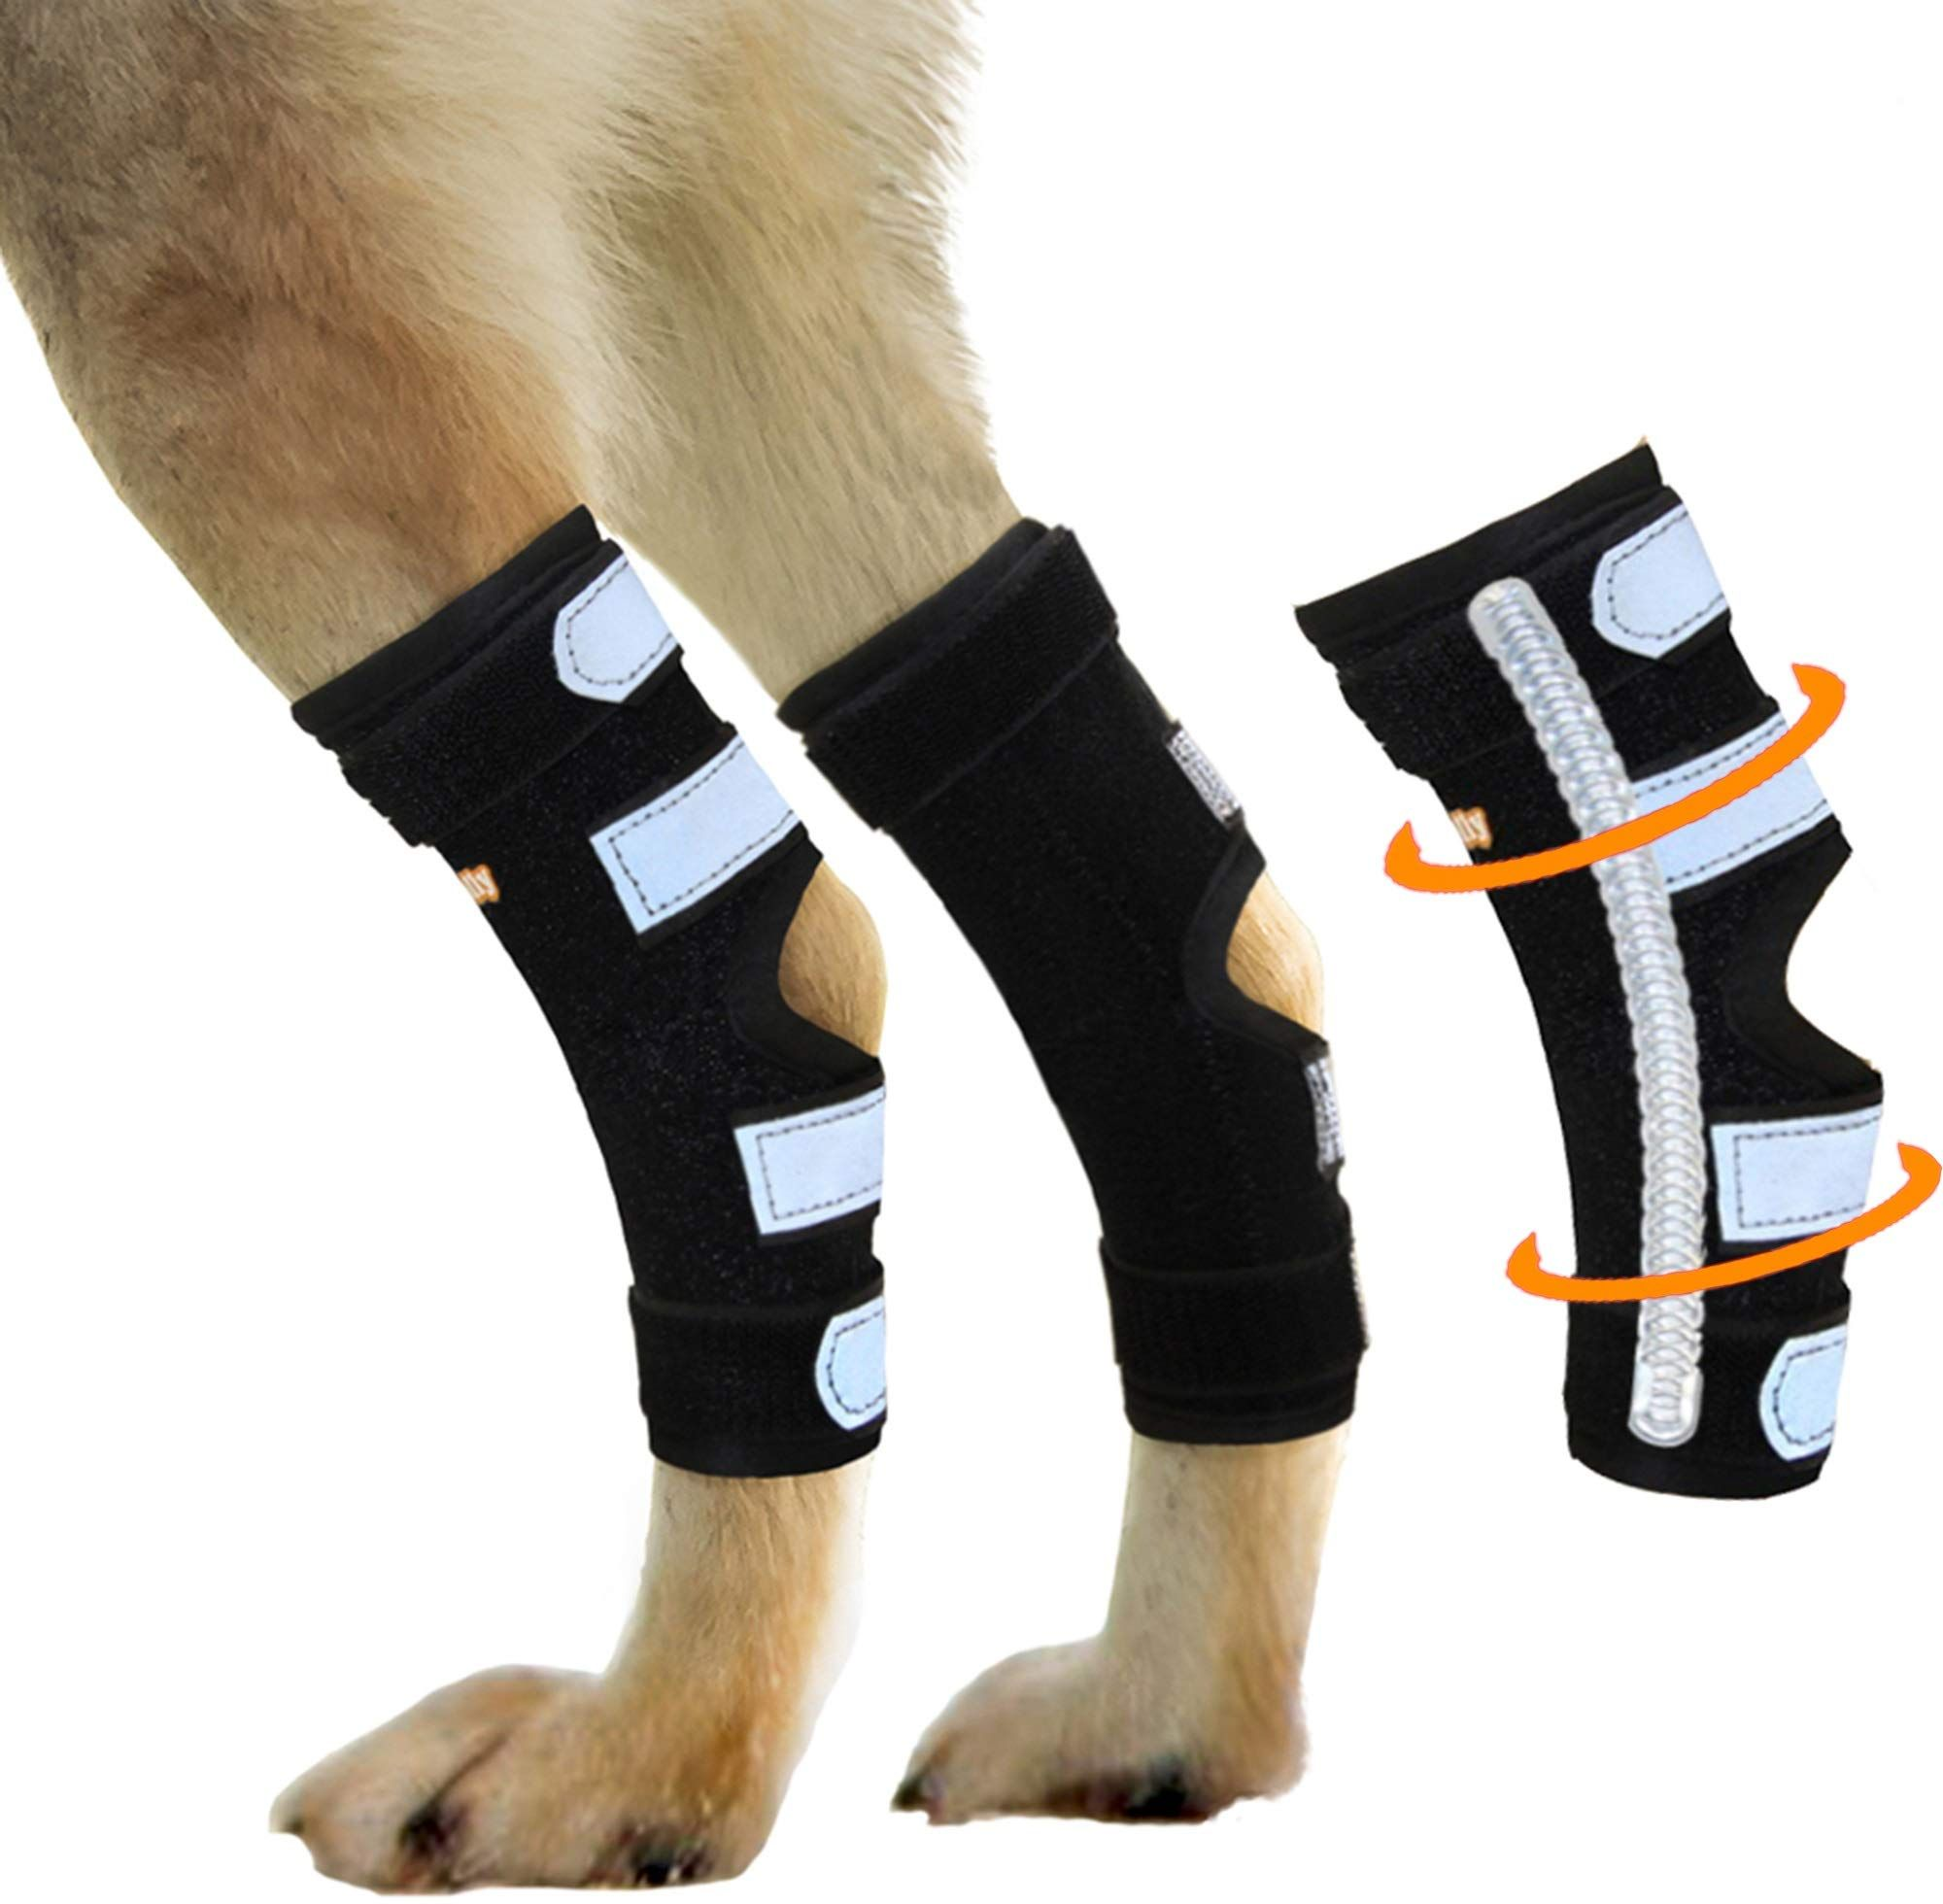 NeoAlly Dog Braces for Back Legs Super Supportive with